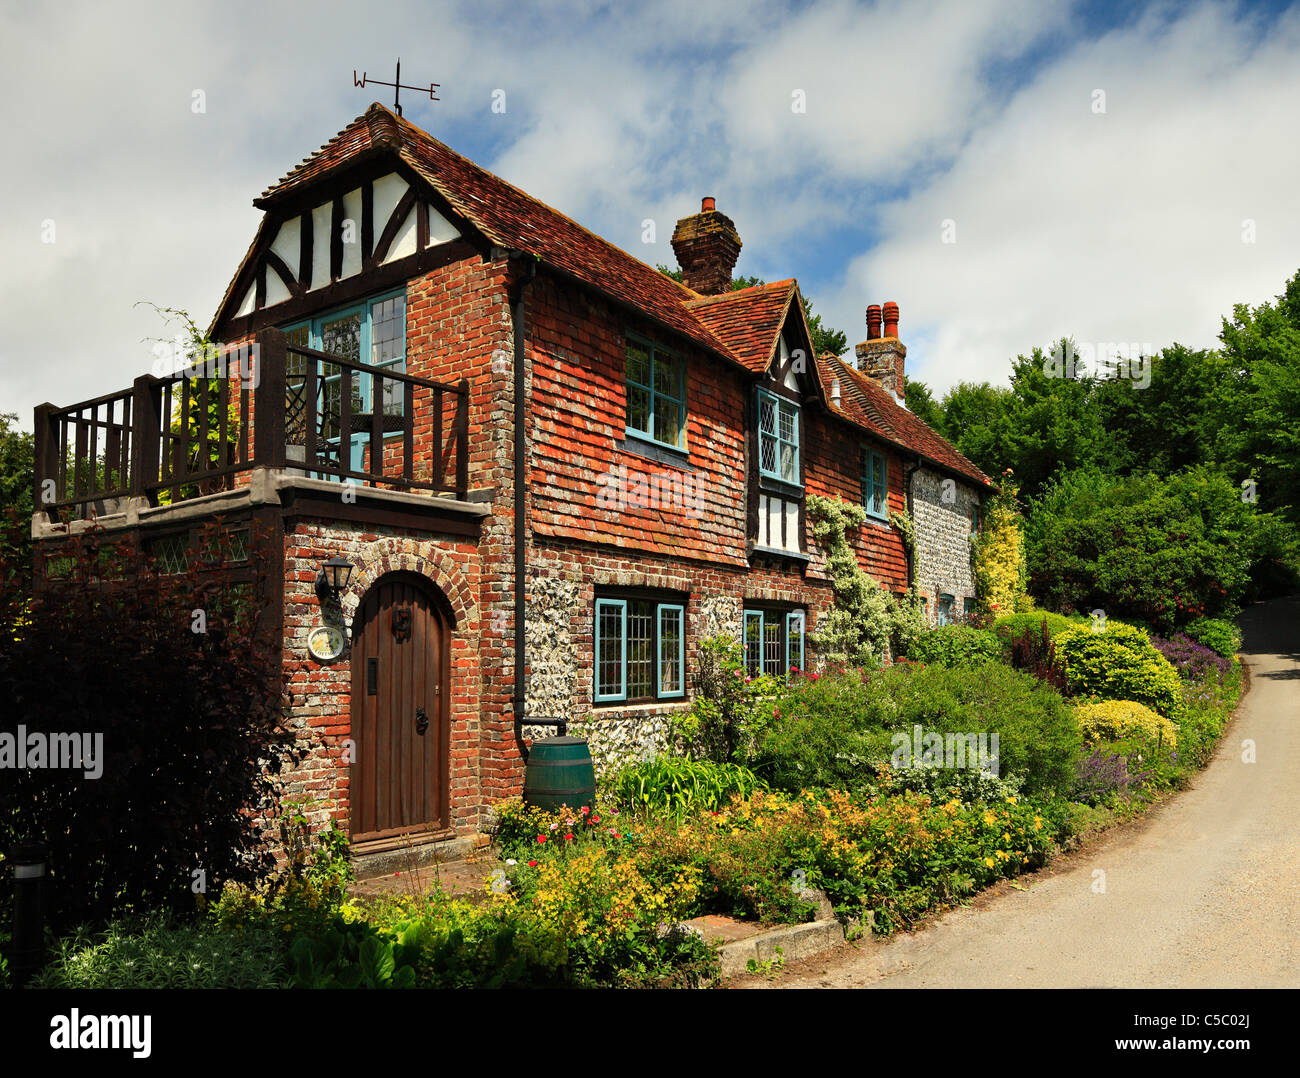 Traditional English country cottage. - Stock Image